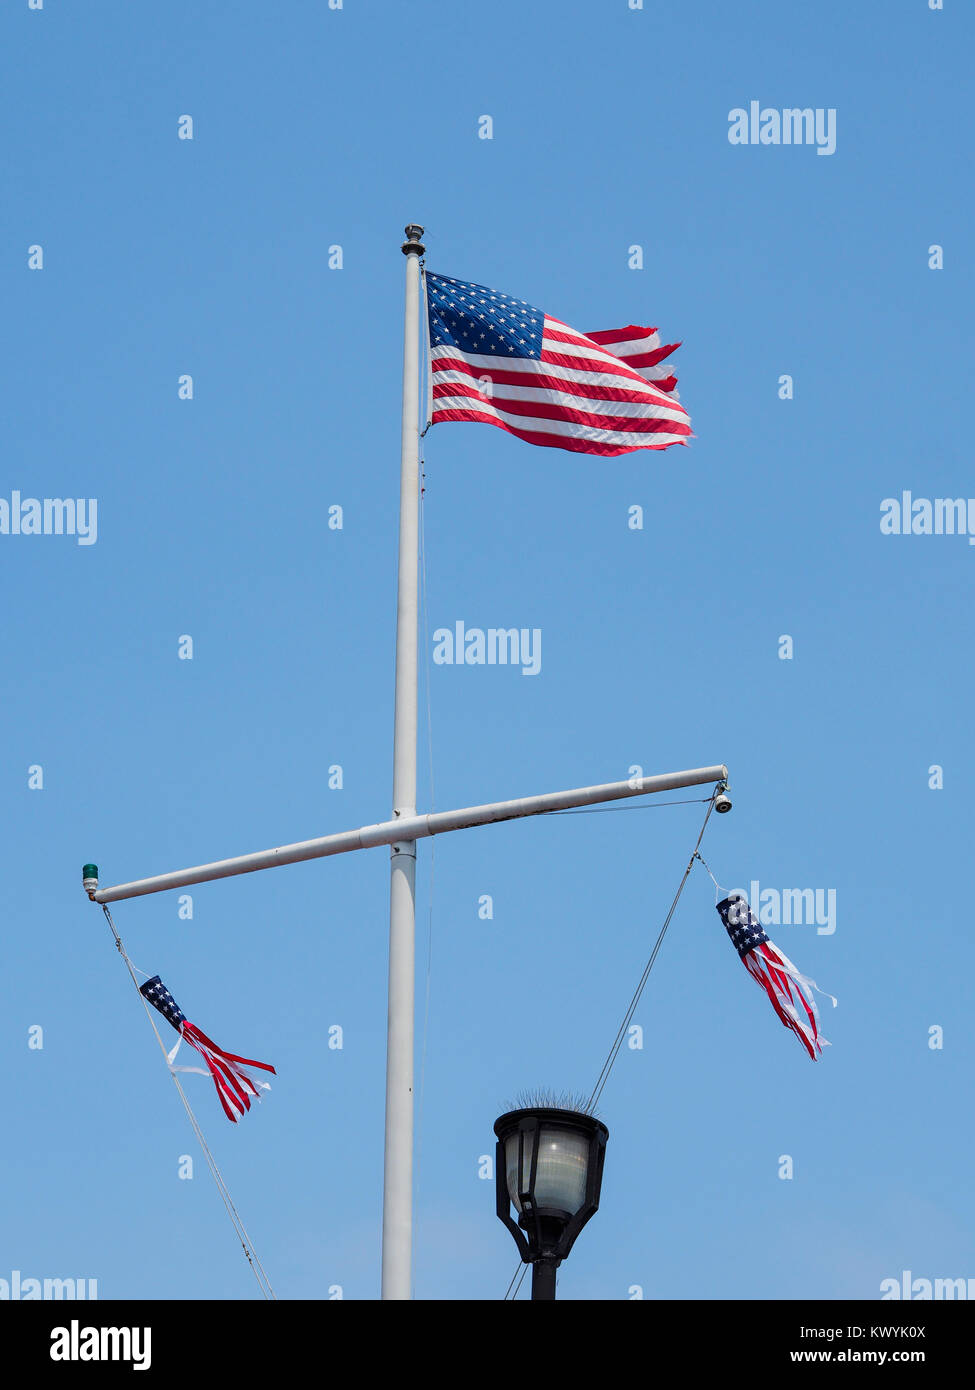 The American flag is flying on top of a flagpole at the port city of Monterey, California - Stock Image